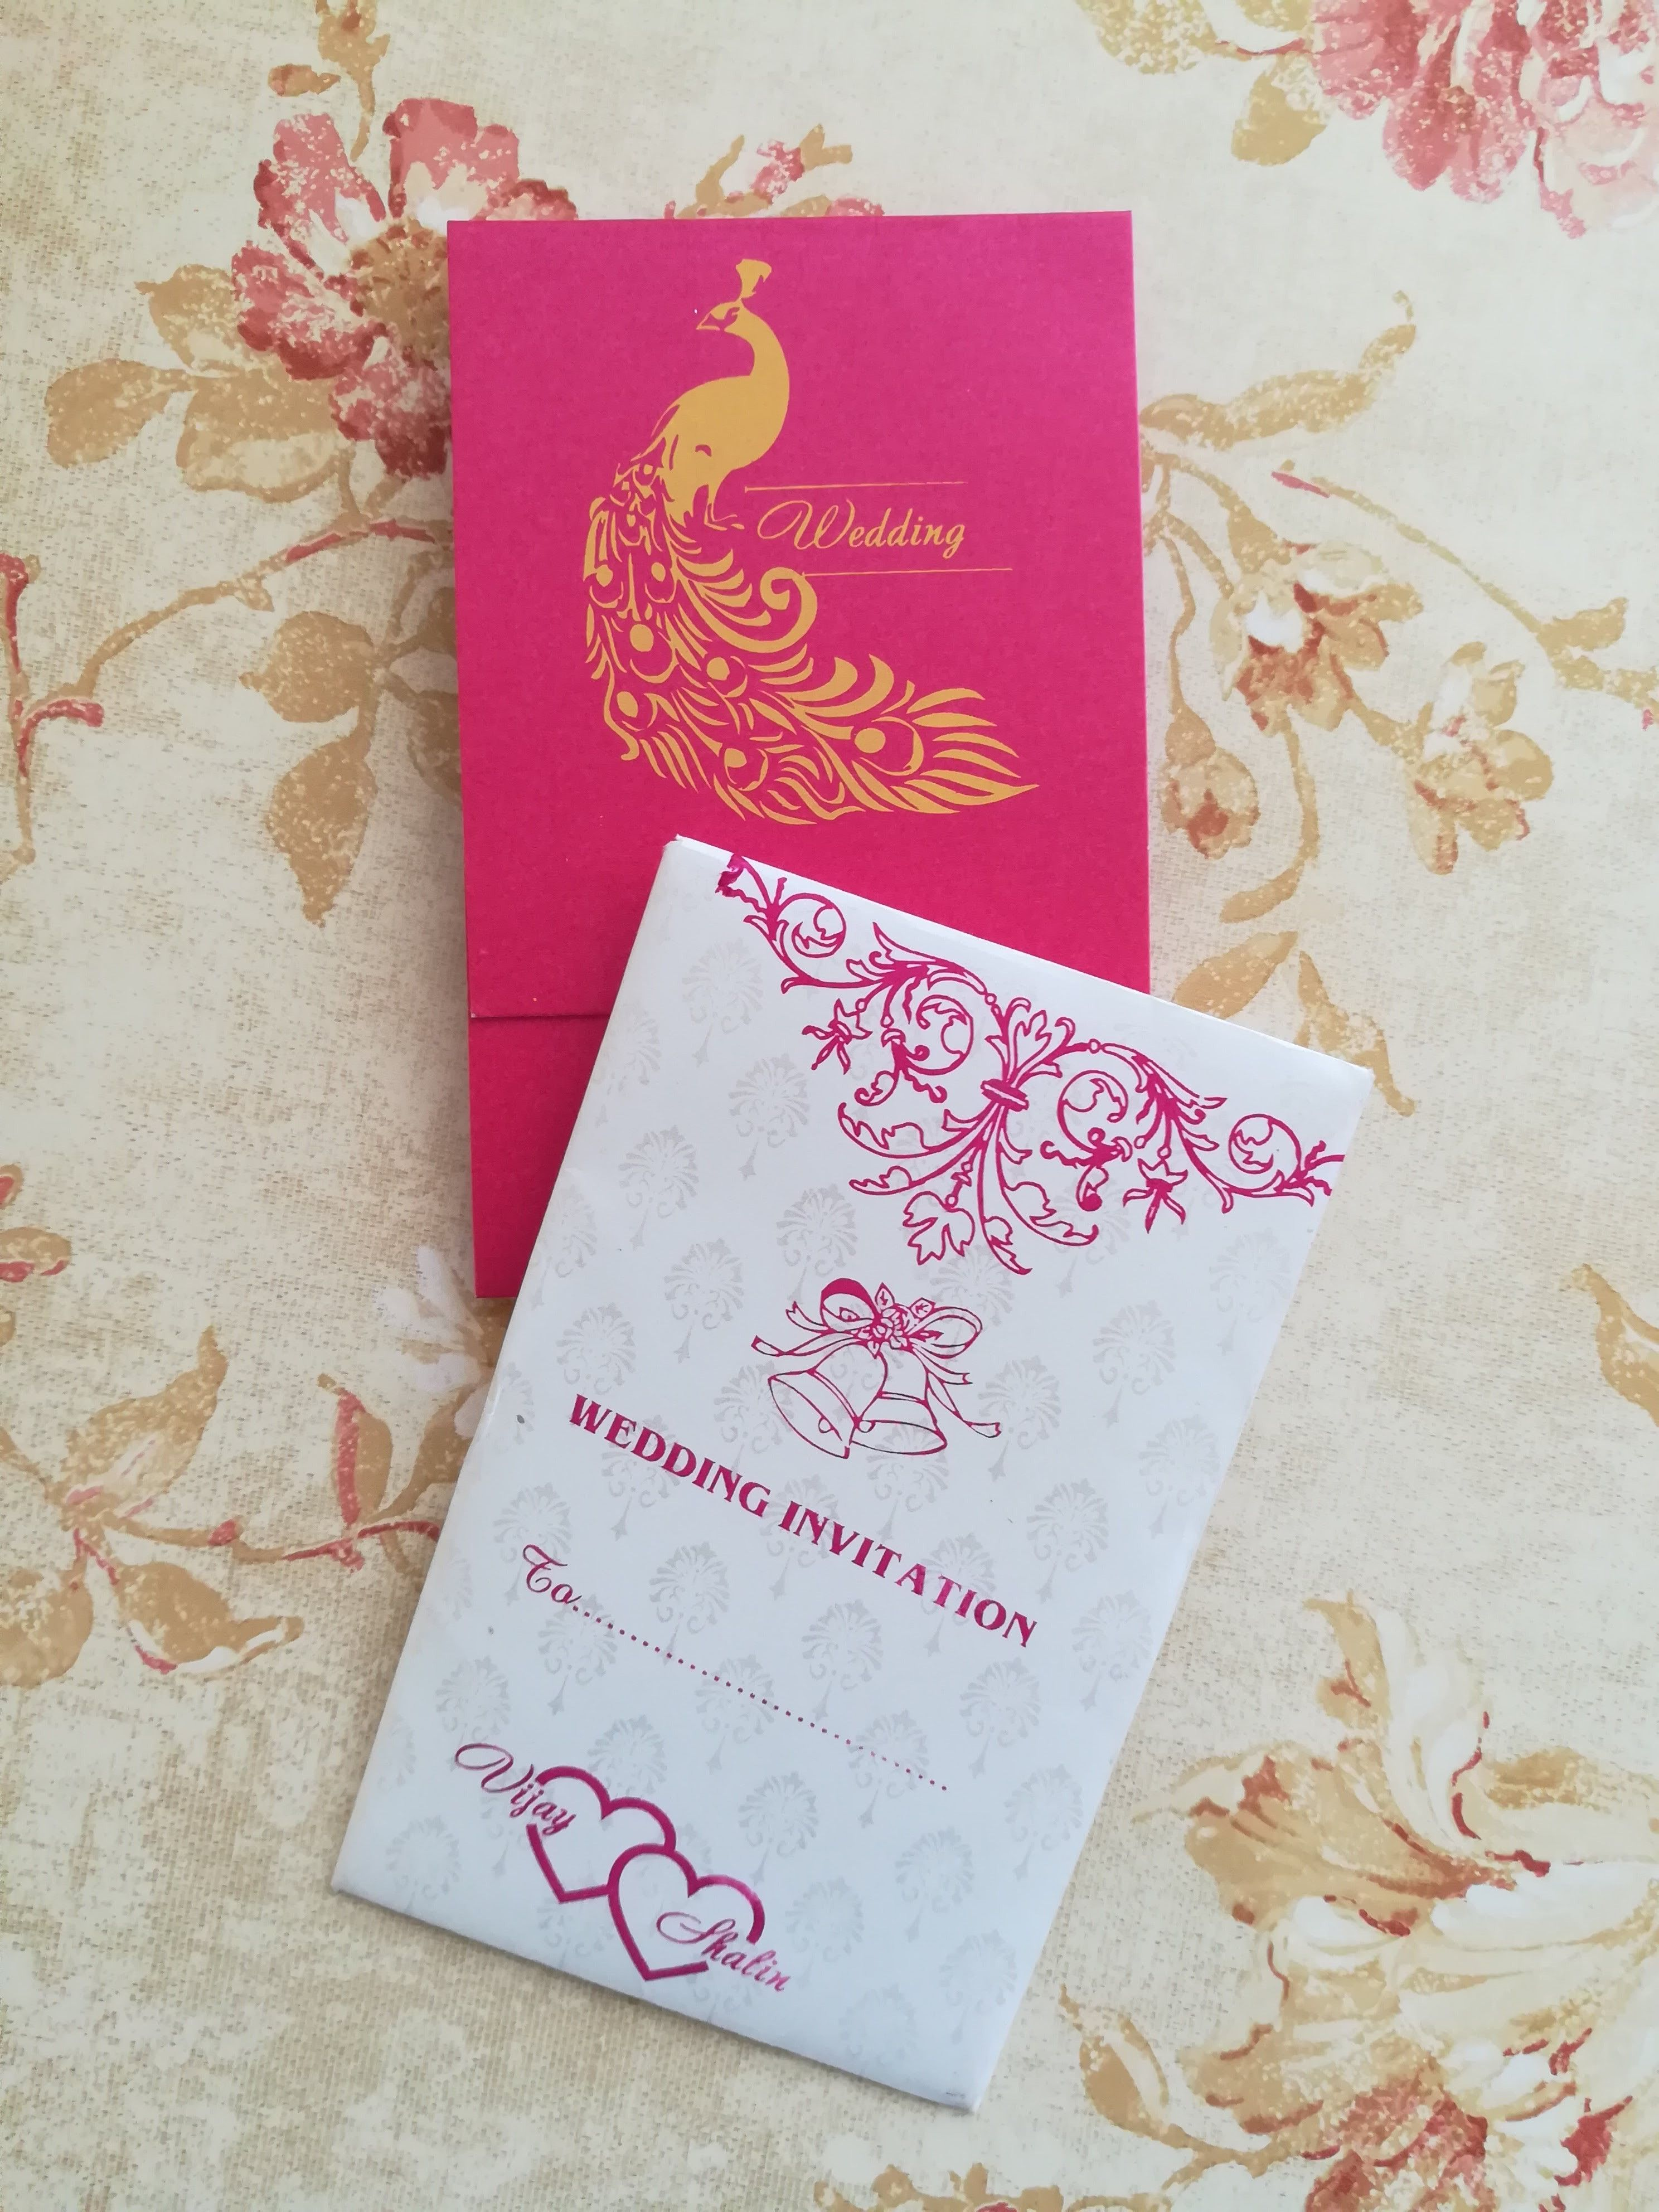 South Indian Traditional Wedding Card Which Conveys Modern And Traditional In A Wedding Invitation Online Design Marriage Invitation Card Marriage Invitations